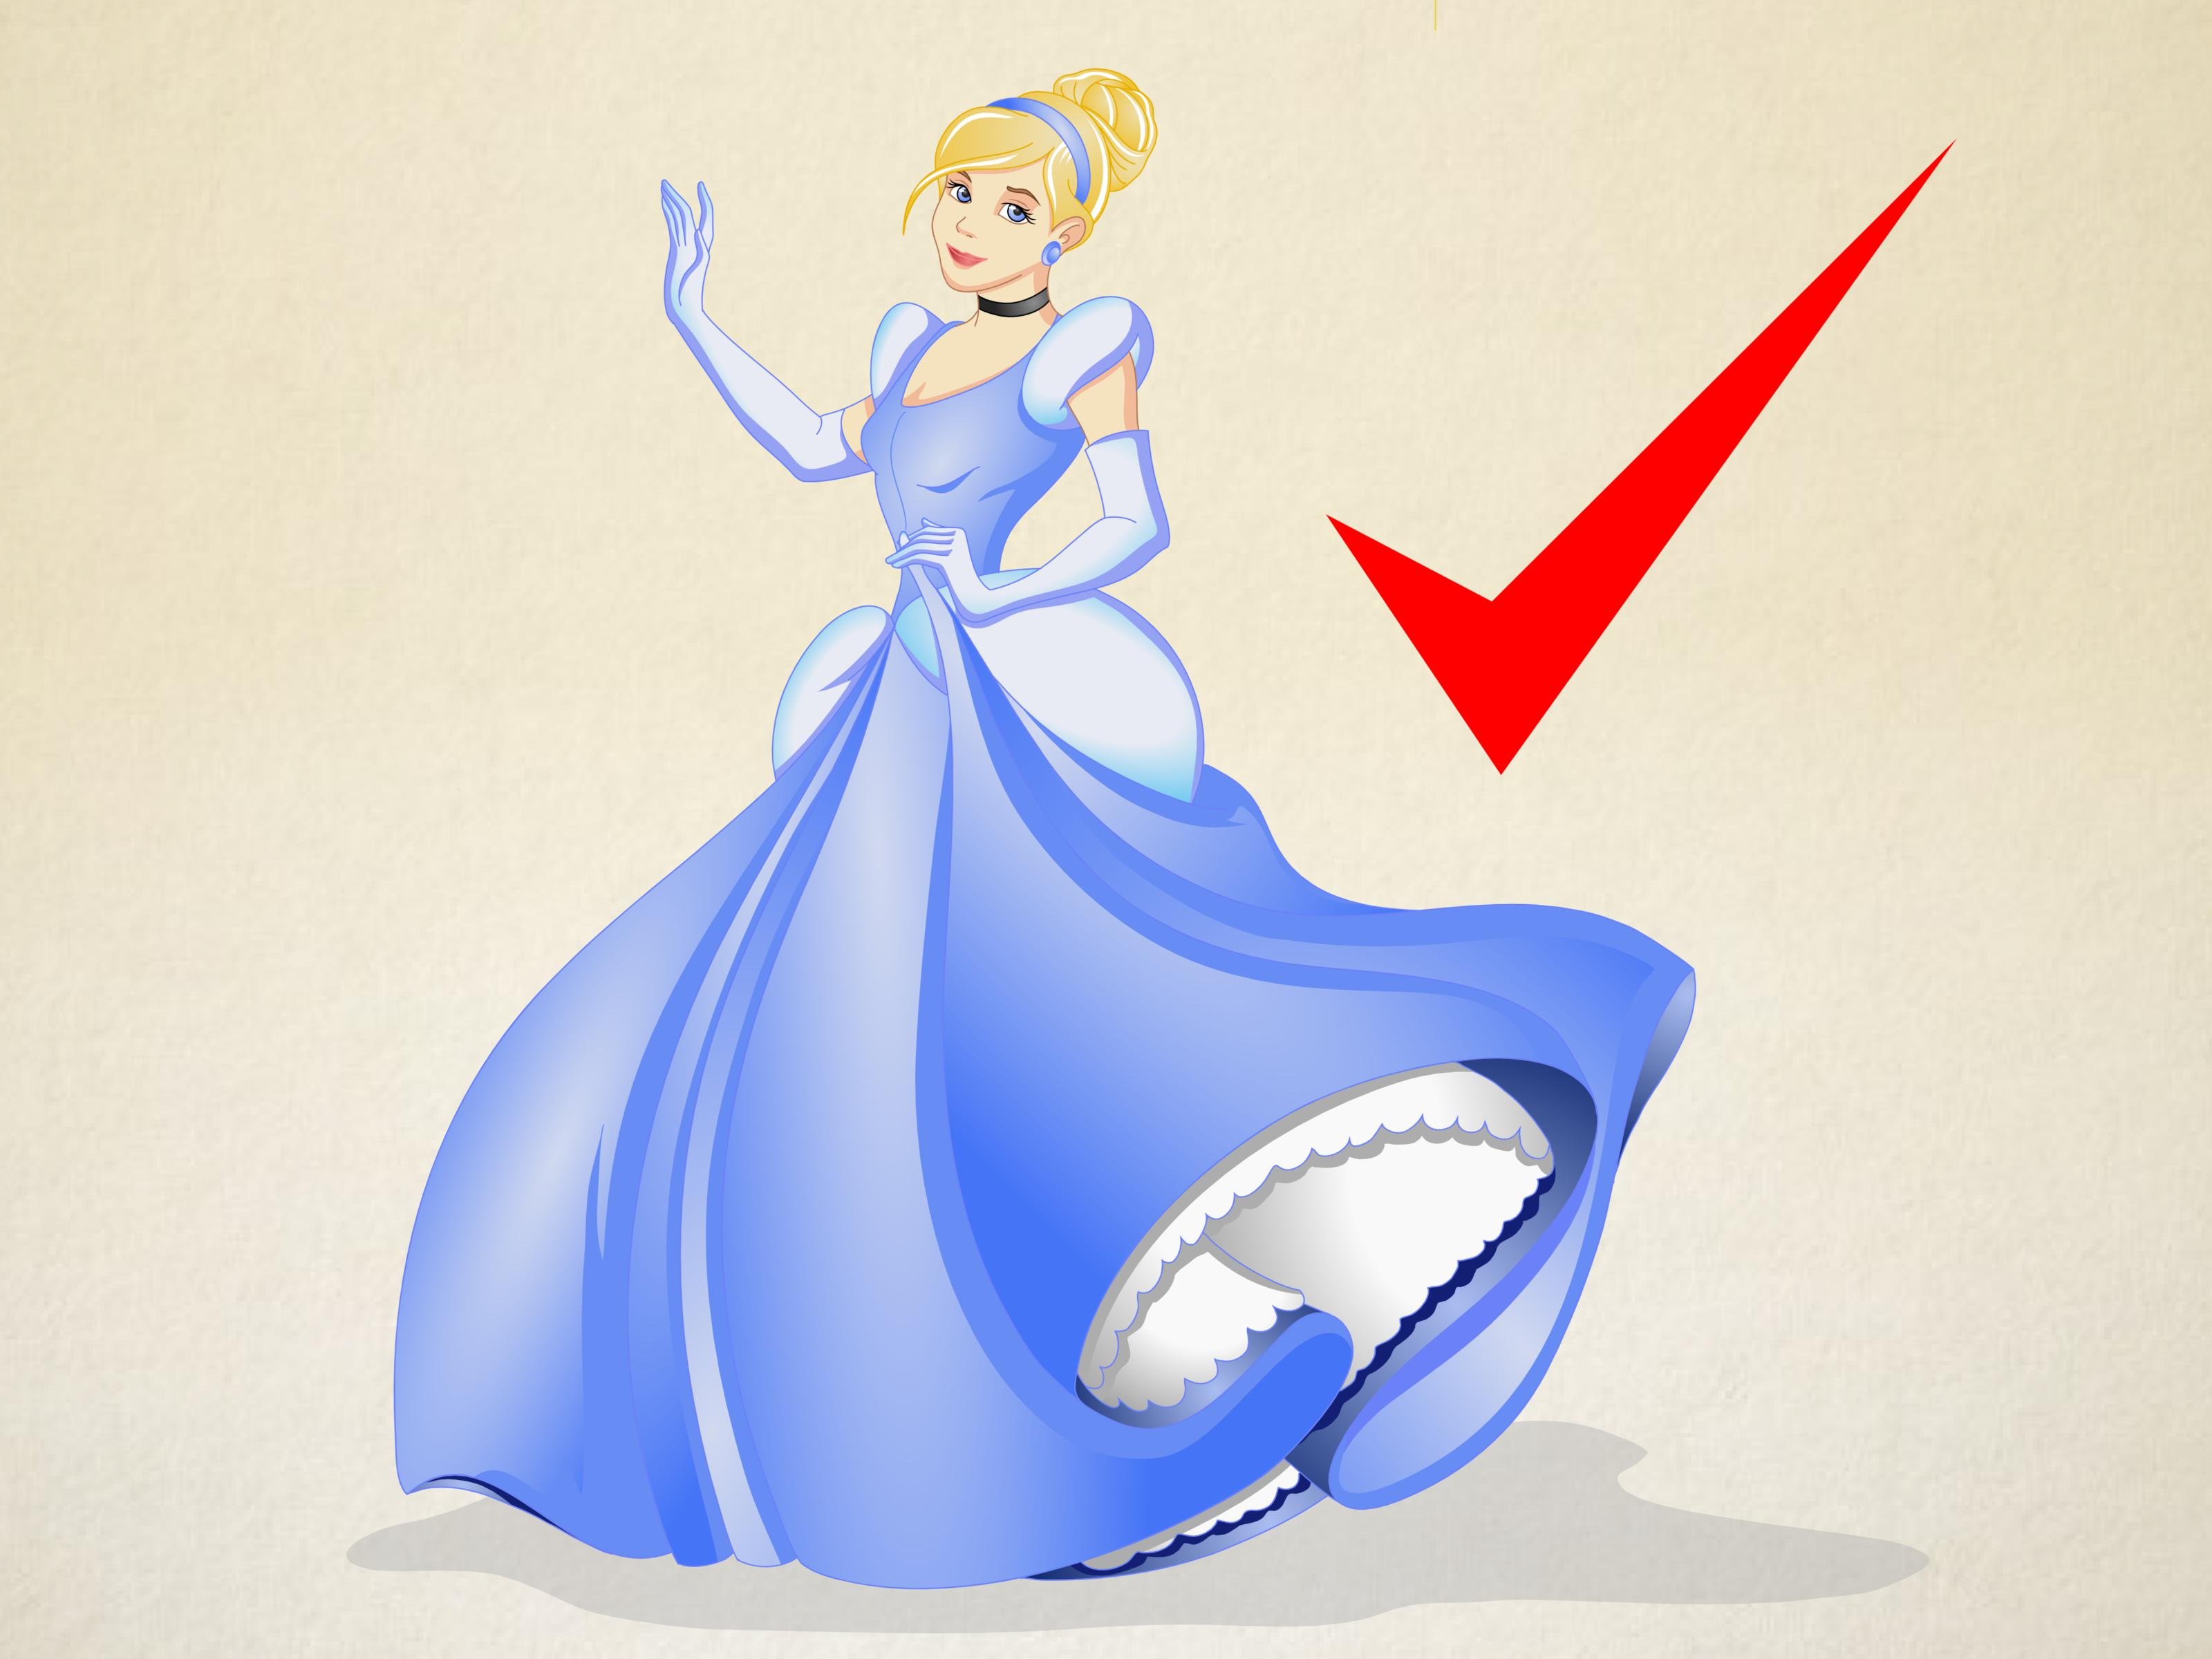 Drawn princess cinderella (with How to Draw Disney